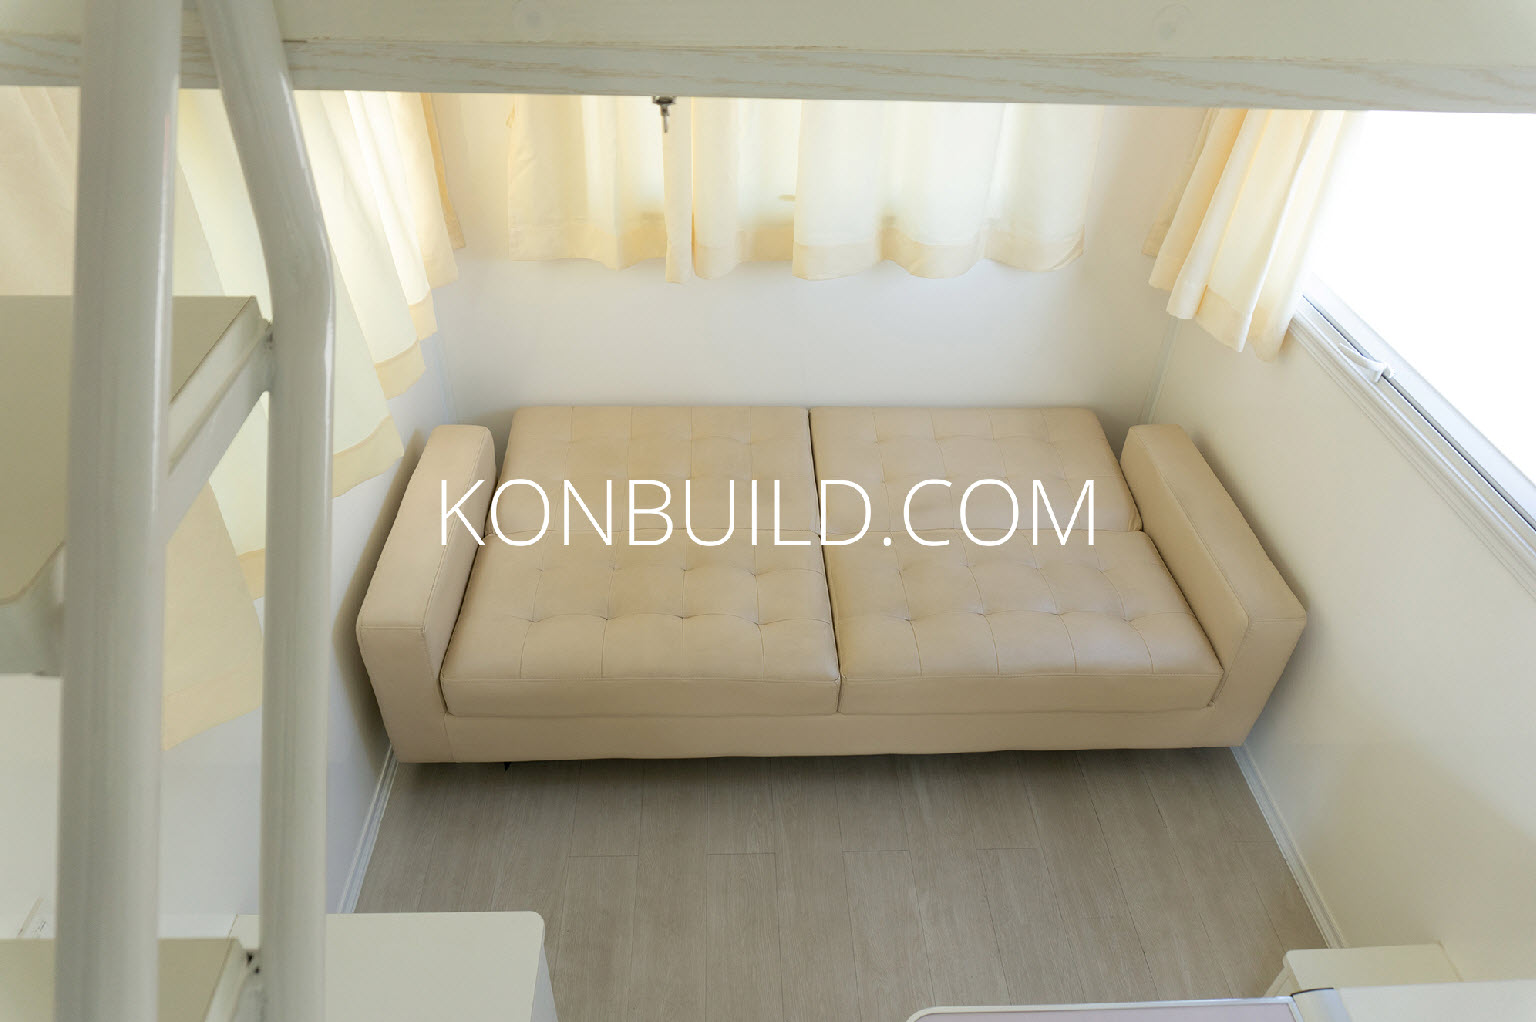 Fold out lounge suite pictured down stairs.